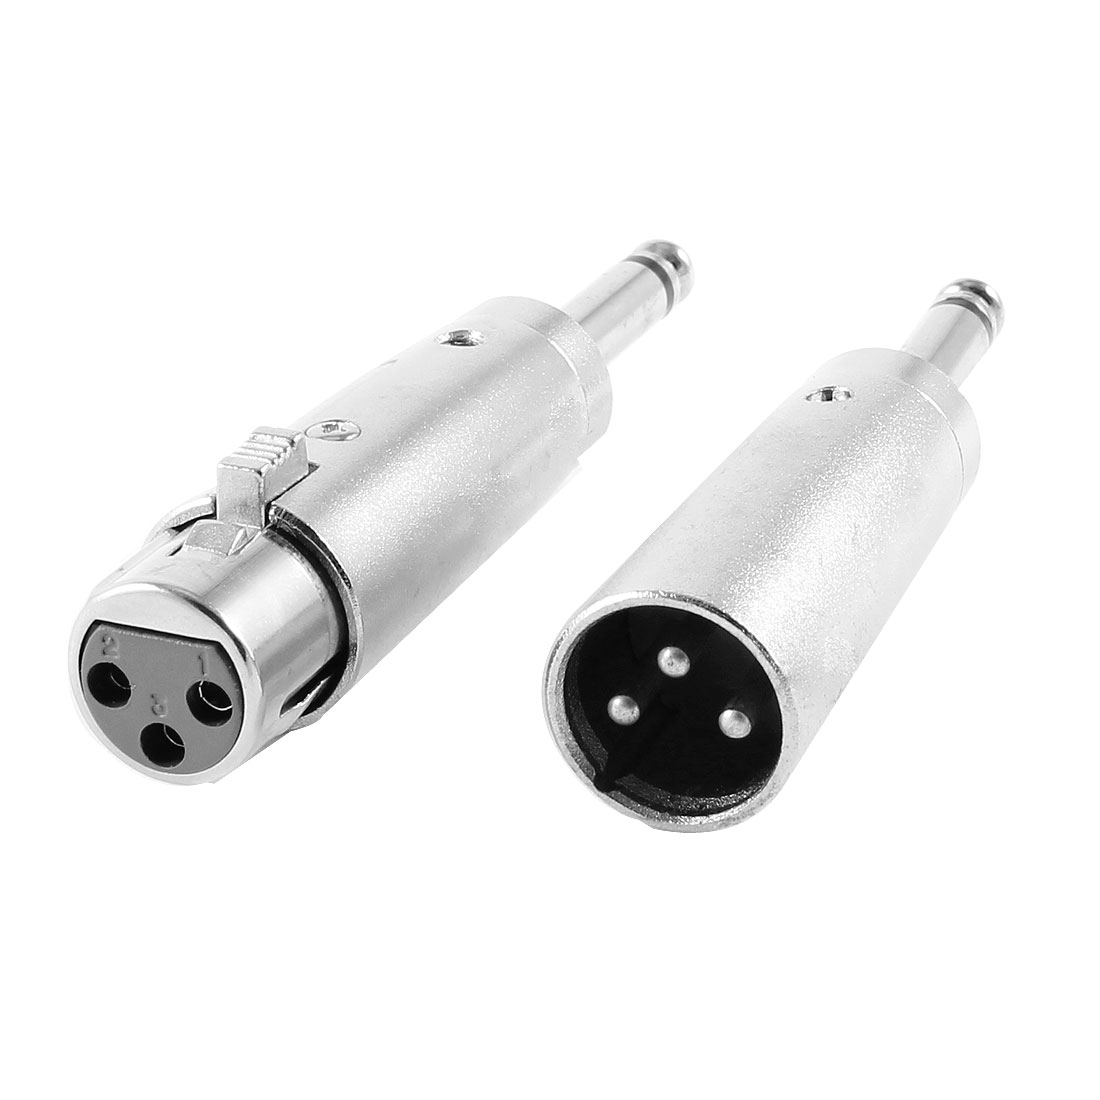 "Pair XLR 3 Terminals Female + Male to 6.35mm Mono 1/4"" Jack Adapter Silver Tone 2 PCS"